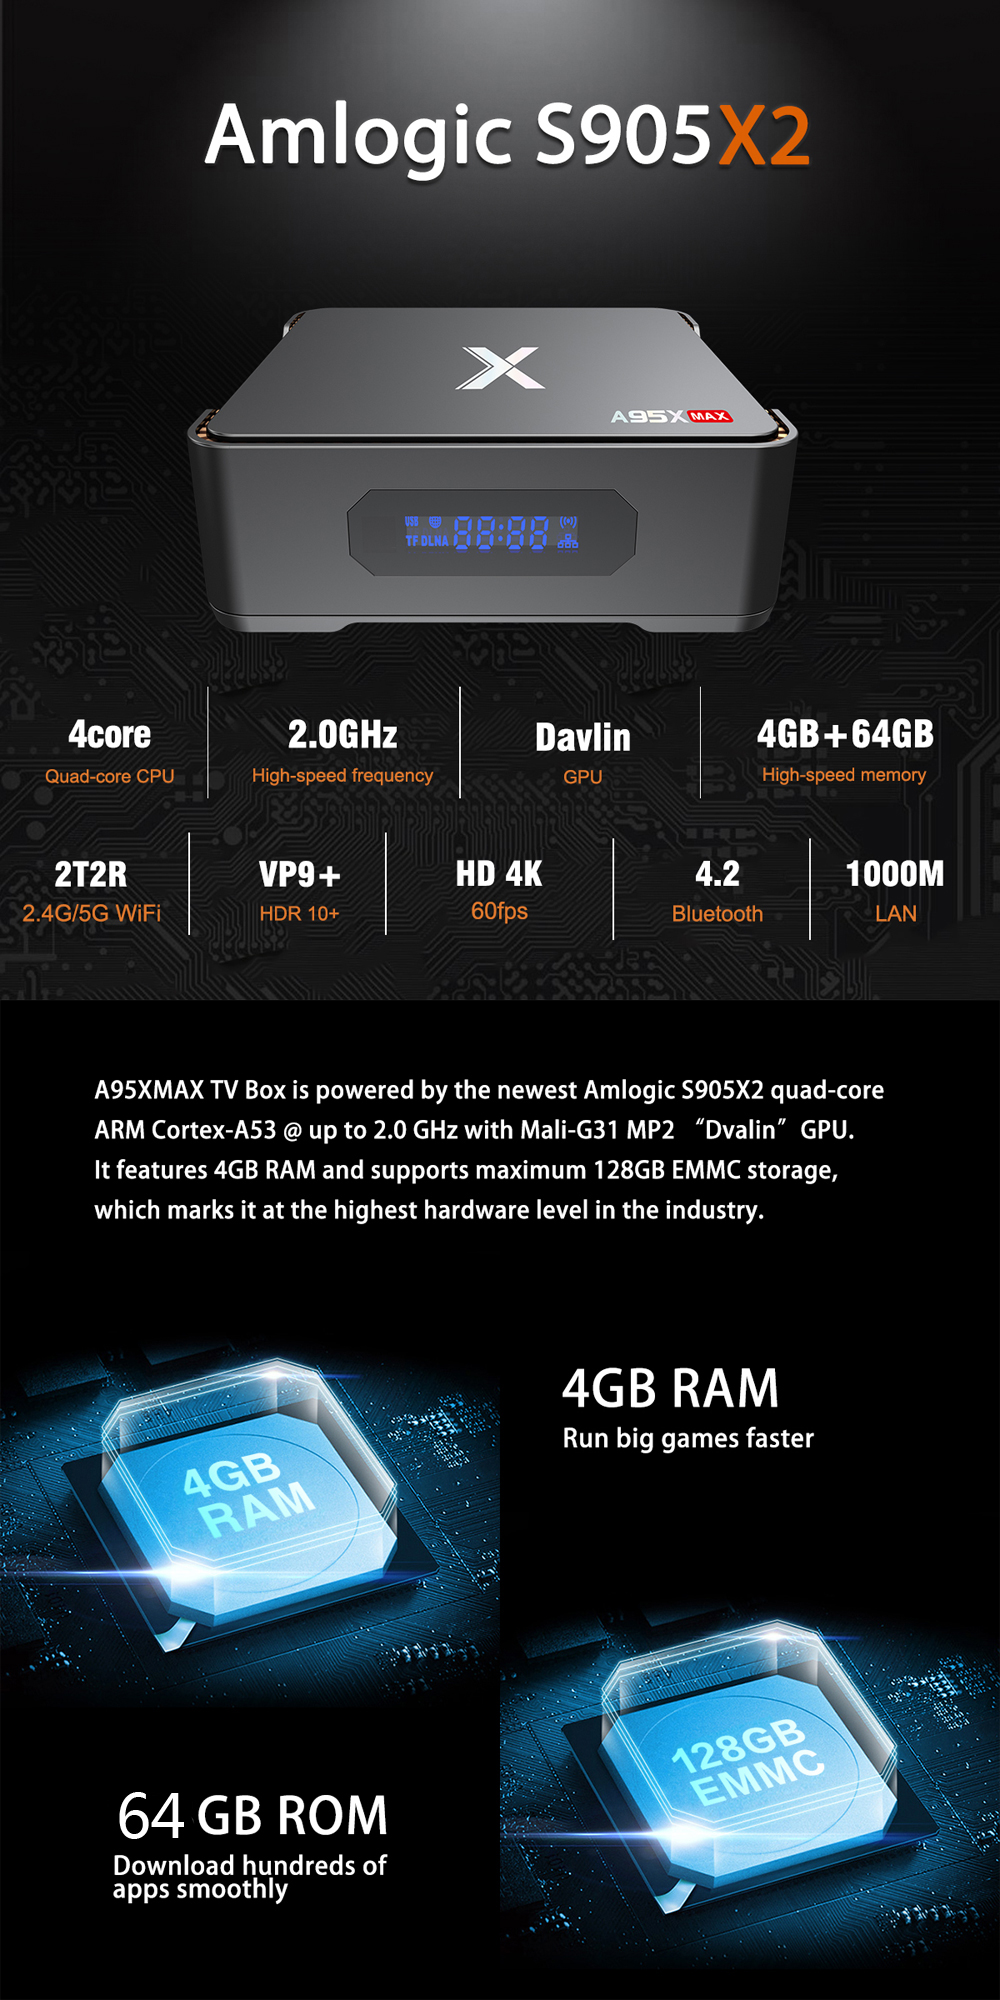 A95X Max S905X2 4GB RAM 64GB ROM 1000M LAN 2.4G 5G WIFI bluetooth 4.2 Android 8.1 4K USB3.0 H.265 VP9 TV Box Mini PC Support SATA 2.5 Inch HDD Video Recording